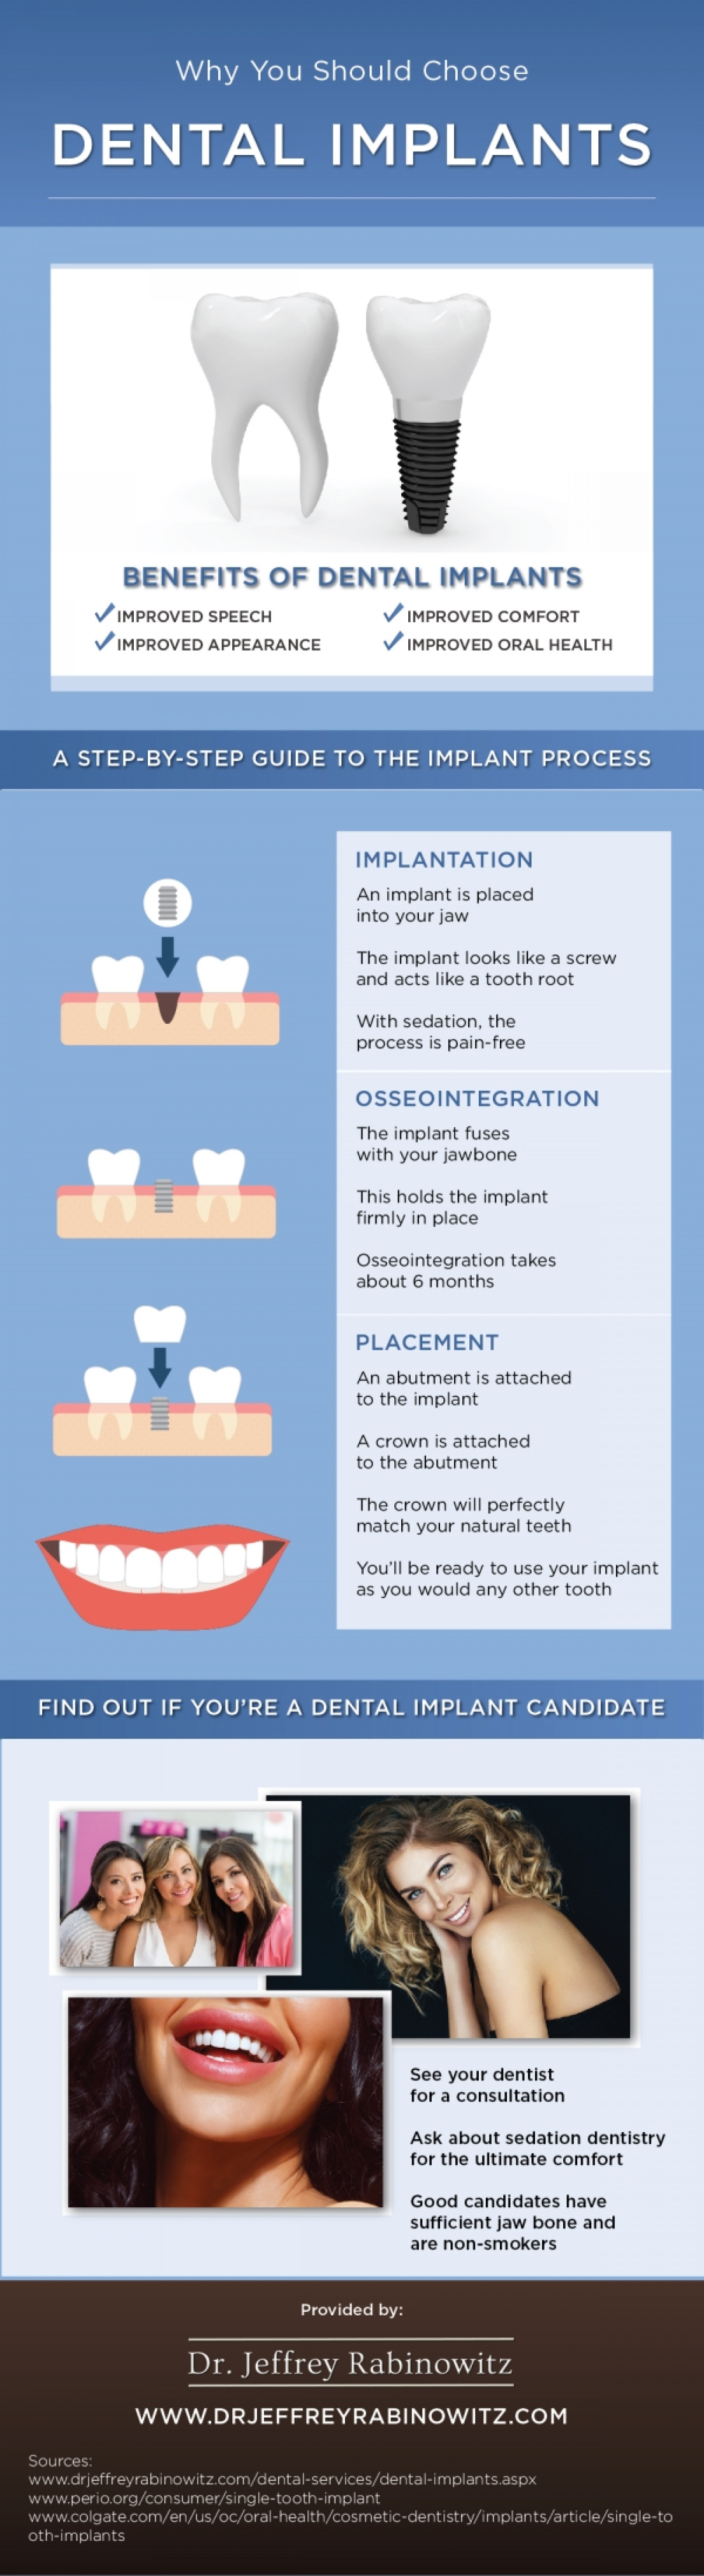 Why You Should Choose Dental Implants Infographic